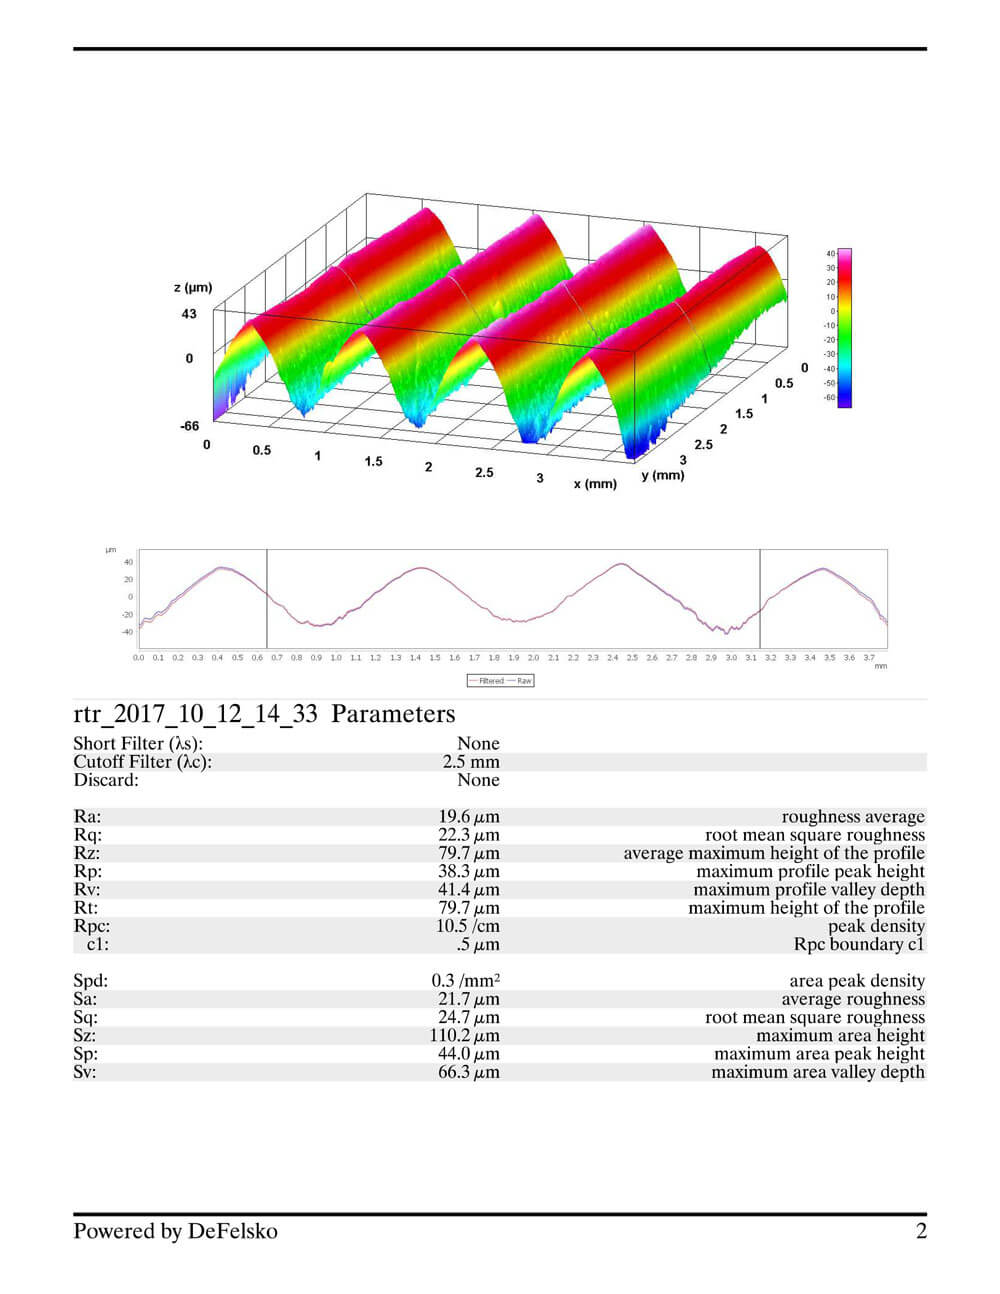 Image of a PosiSoft Desktop report displaying a PosiTector RTR 3D Surface Data File and statistics